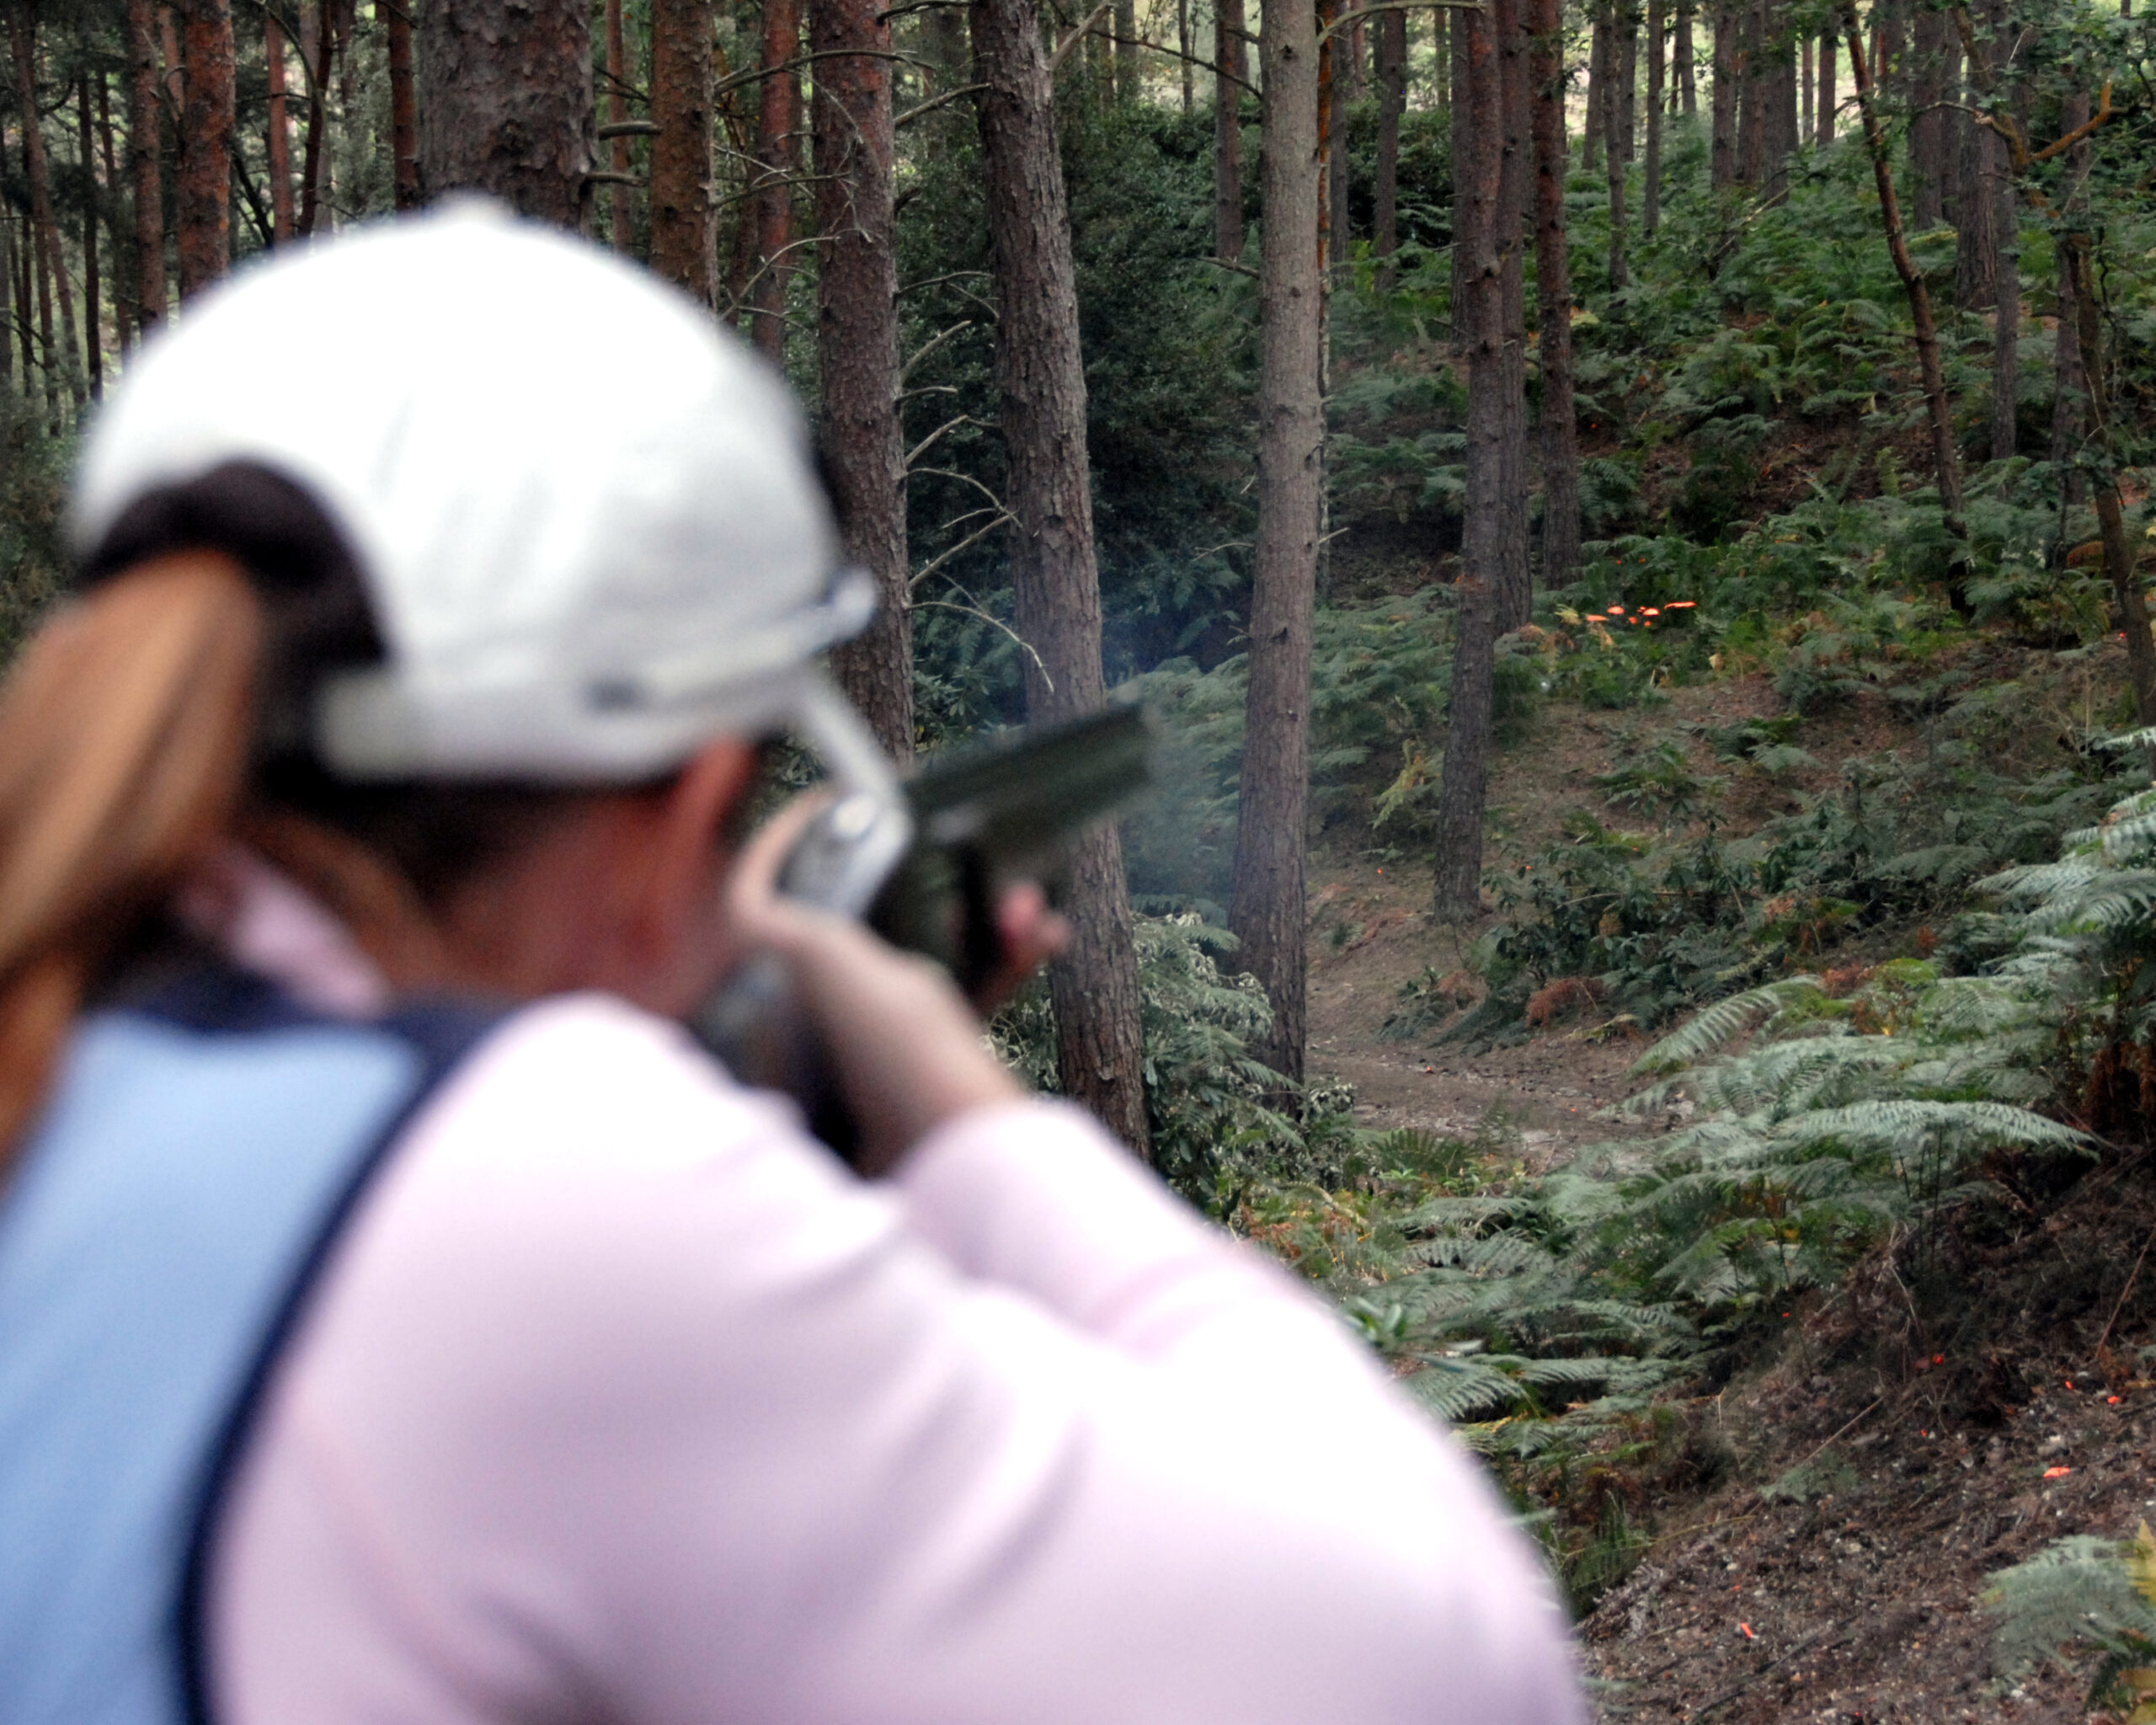 woman with a shotgun in forest | shotgun and firearms applications and renewals medical reports | Shotgun Medicals